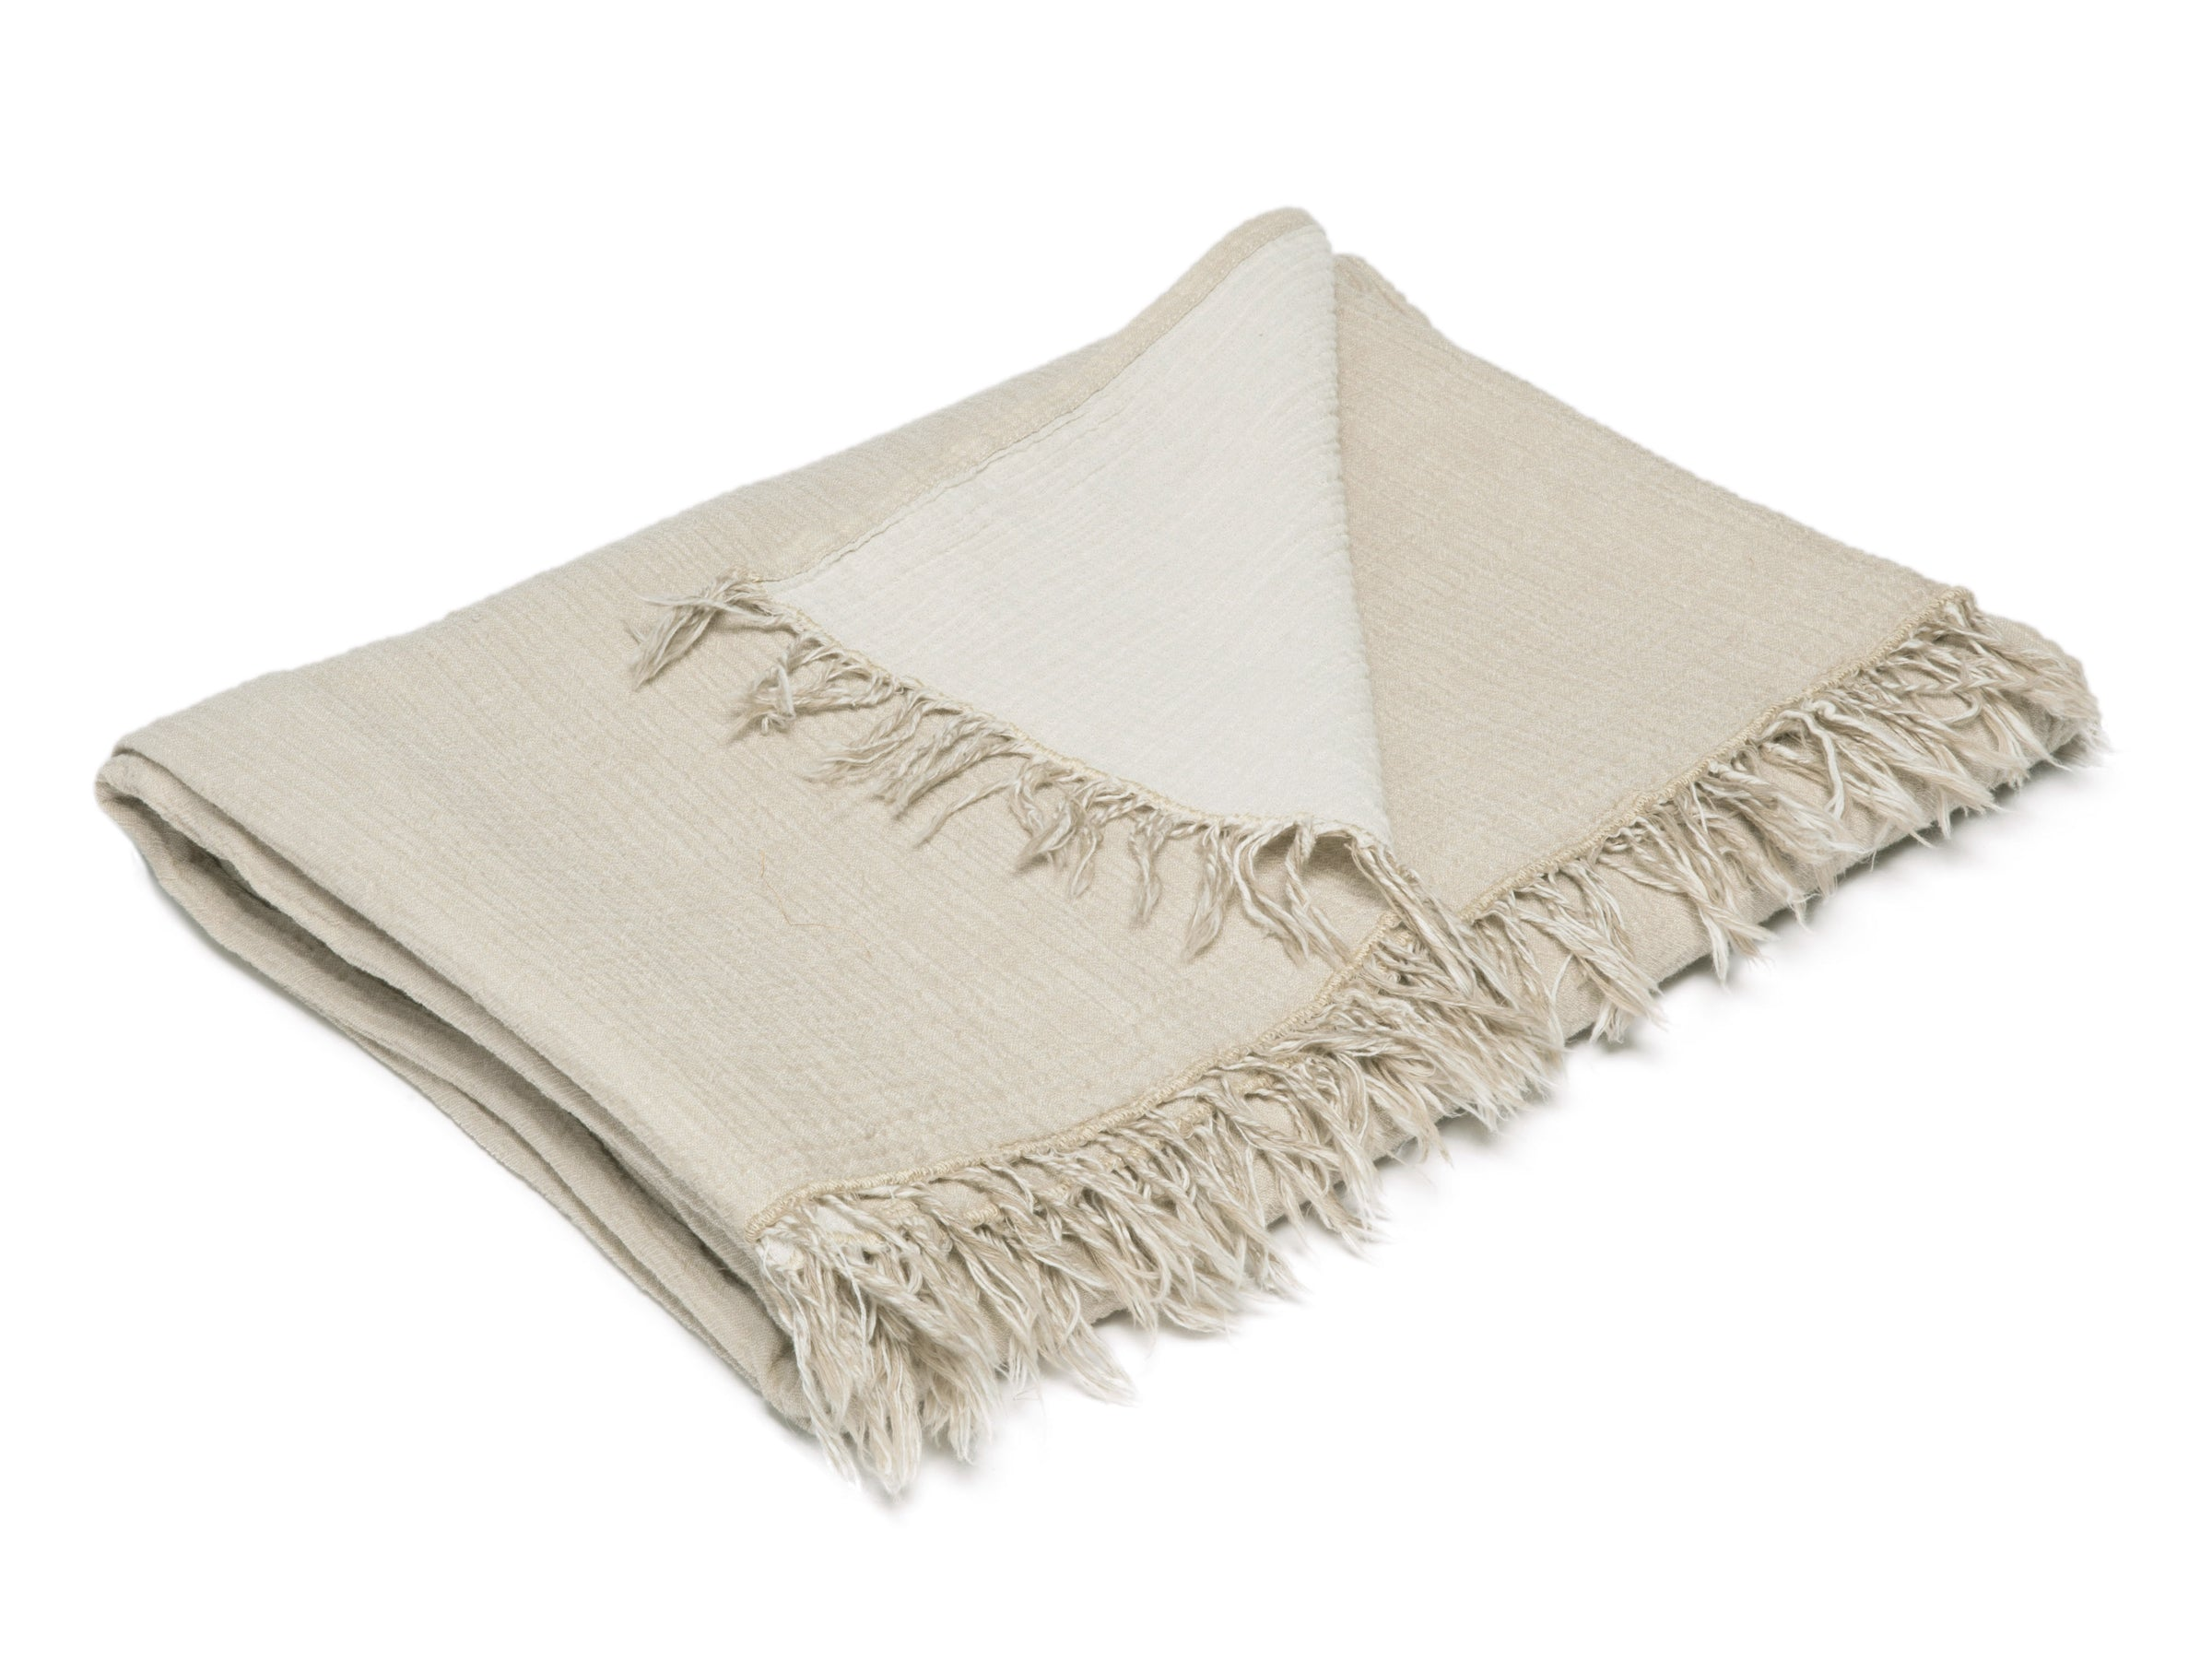 Cotton throw in natural tan